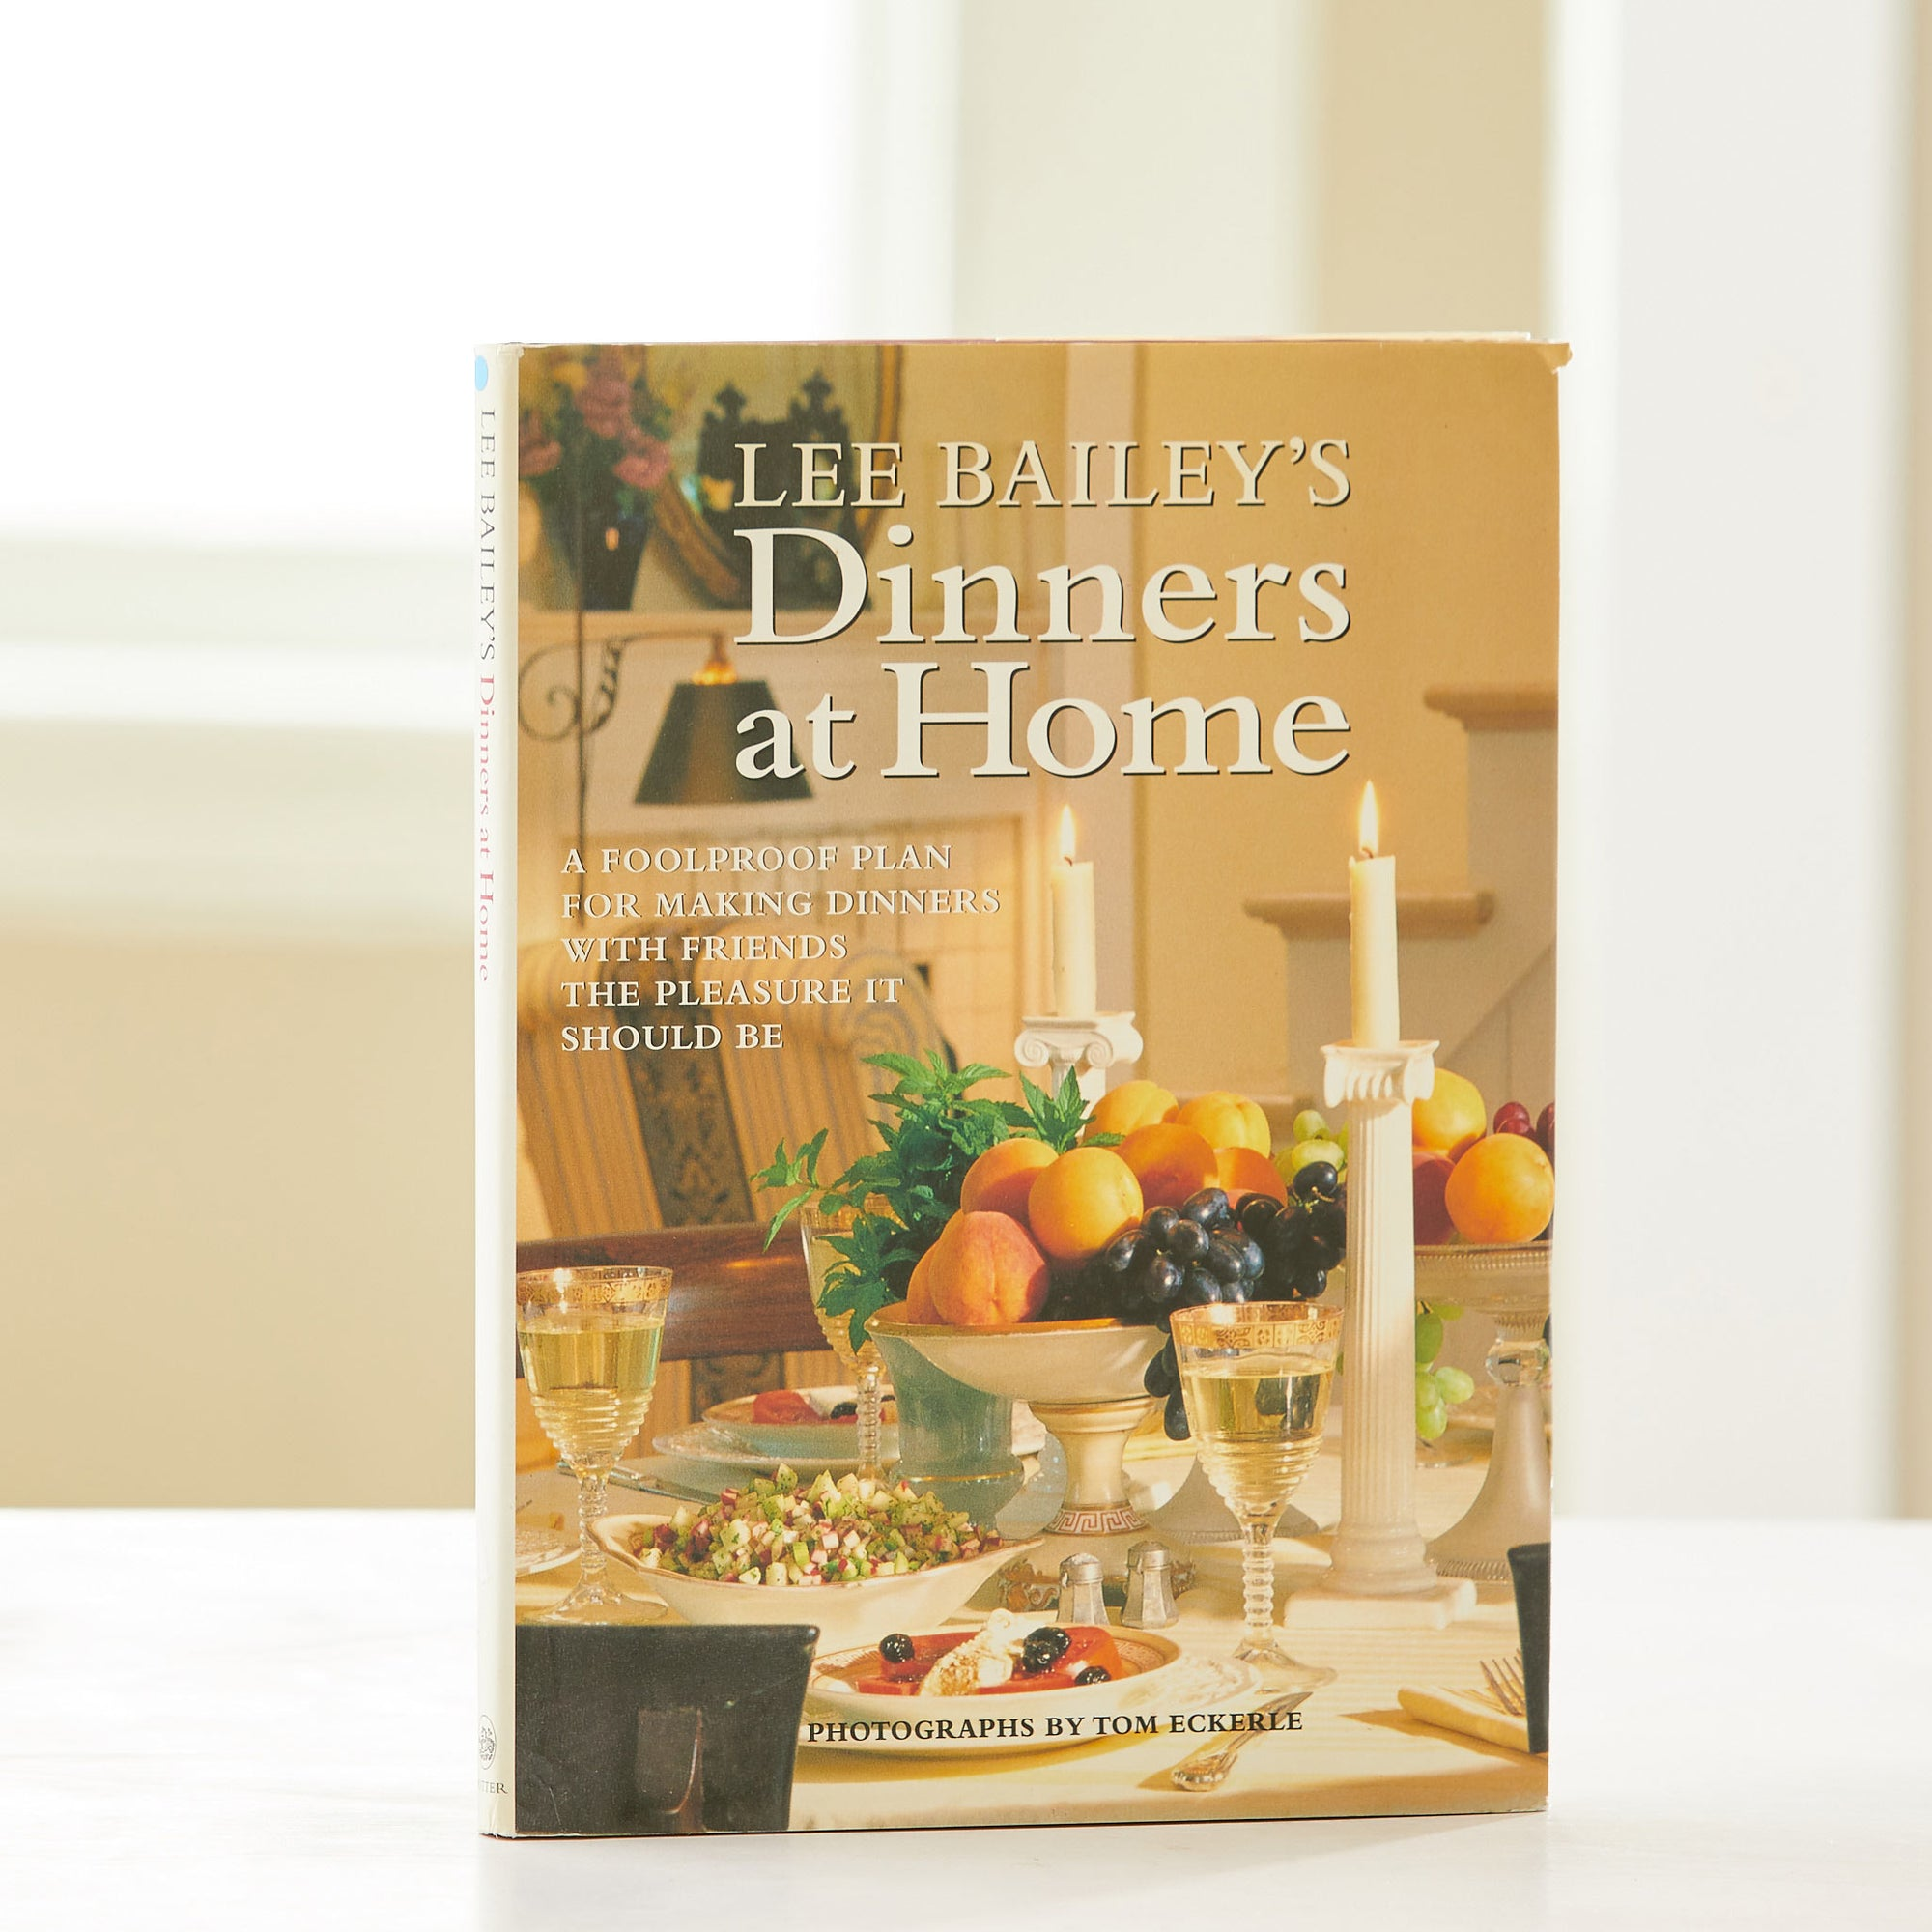 Lee Bailey's Dinners at Home. Foolproof plans for easy and tasty dinners at home with friends. Best vintage cookbook for home entertaining.